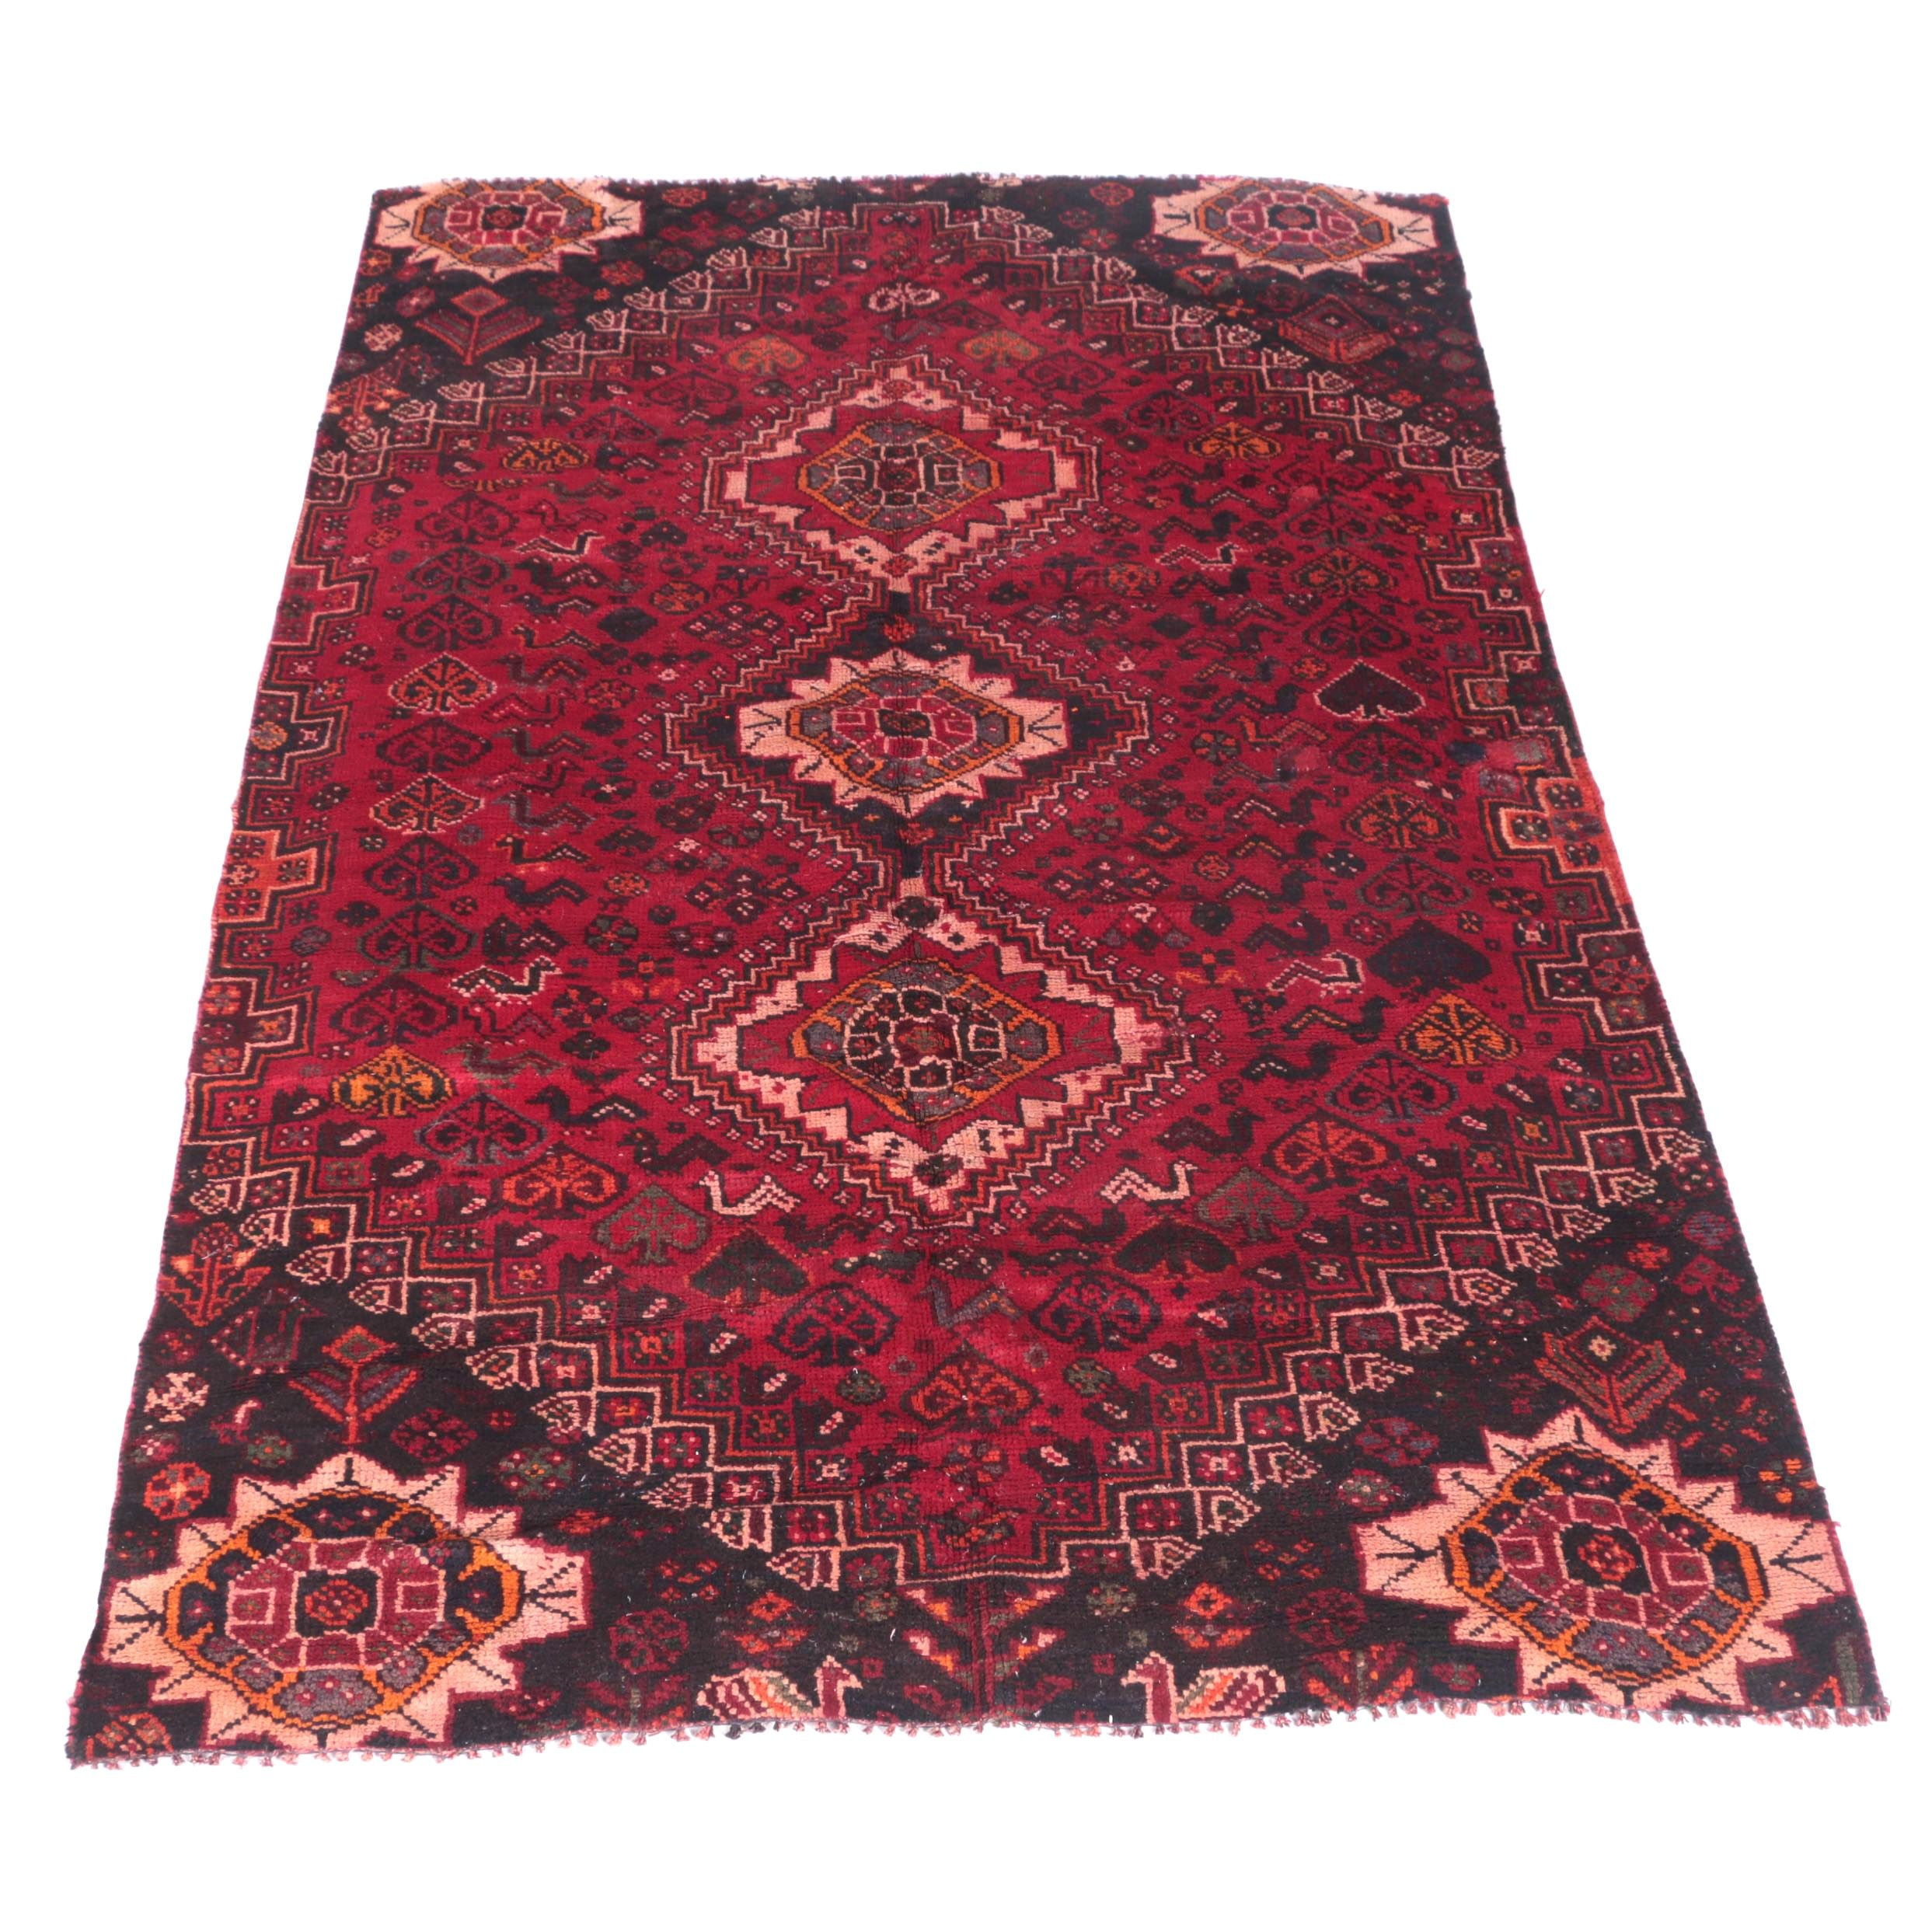 Hand-Knotted Indo-Qashqai Area Rug